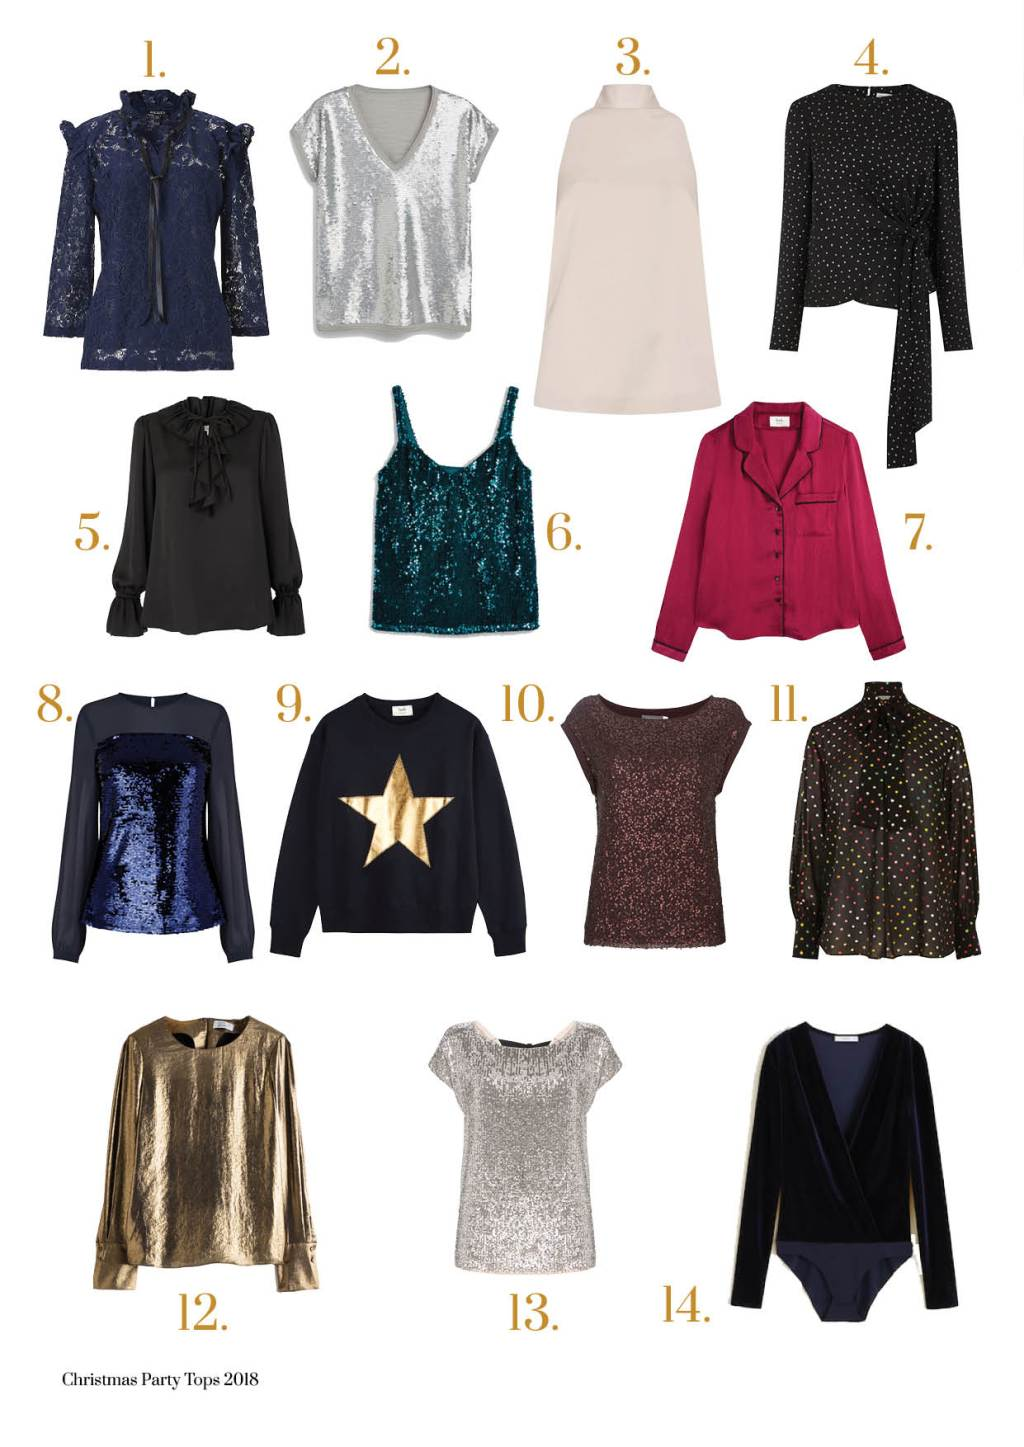 Midlifechic Christmas edit - party tops